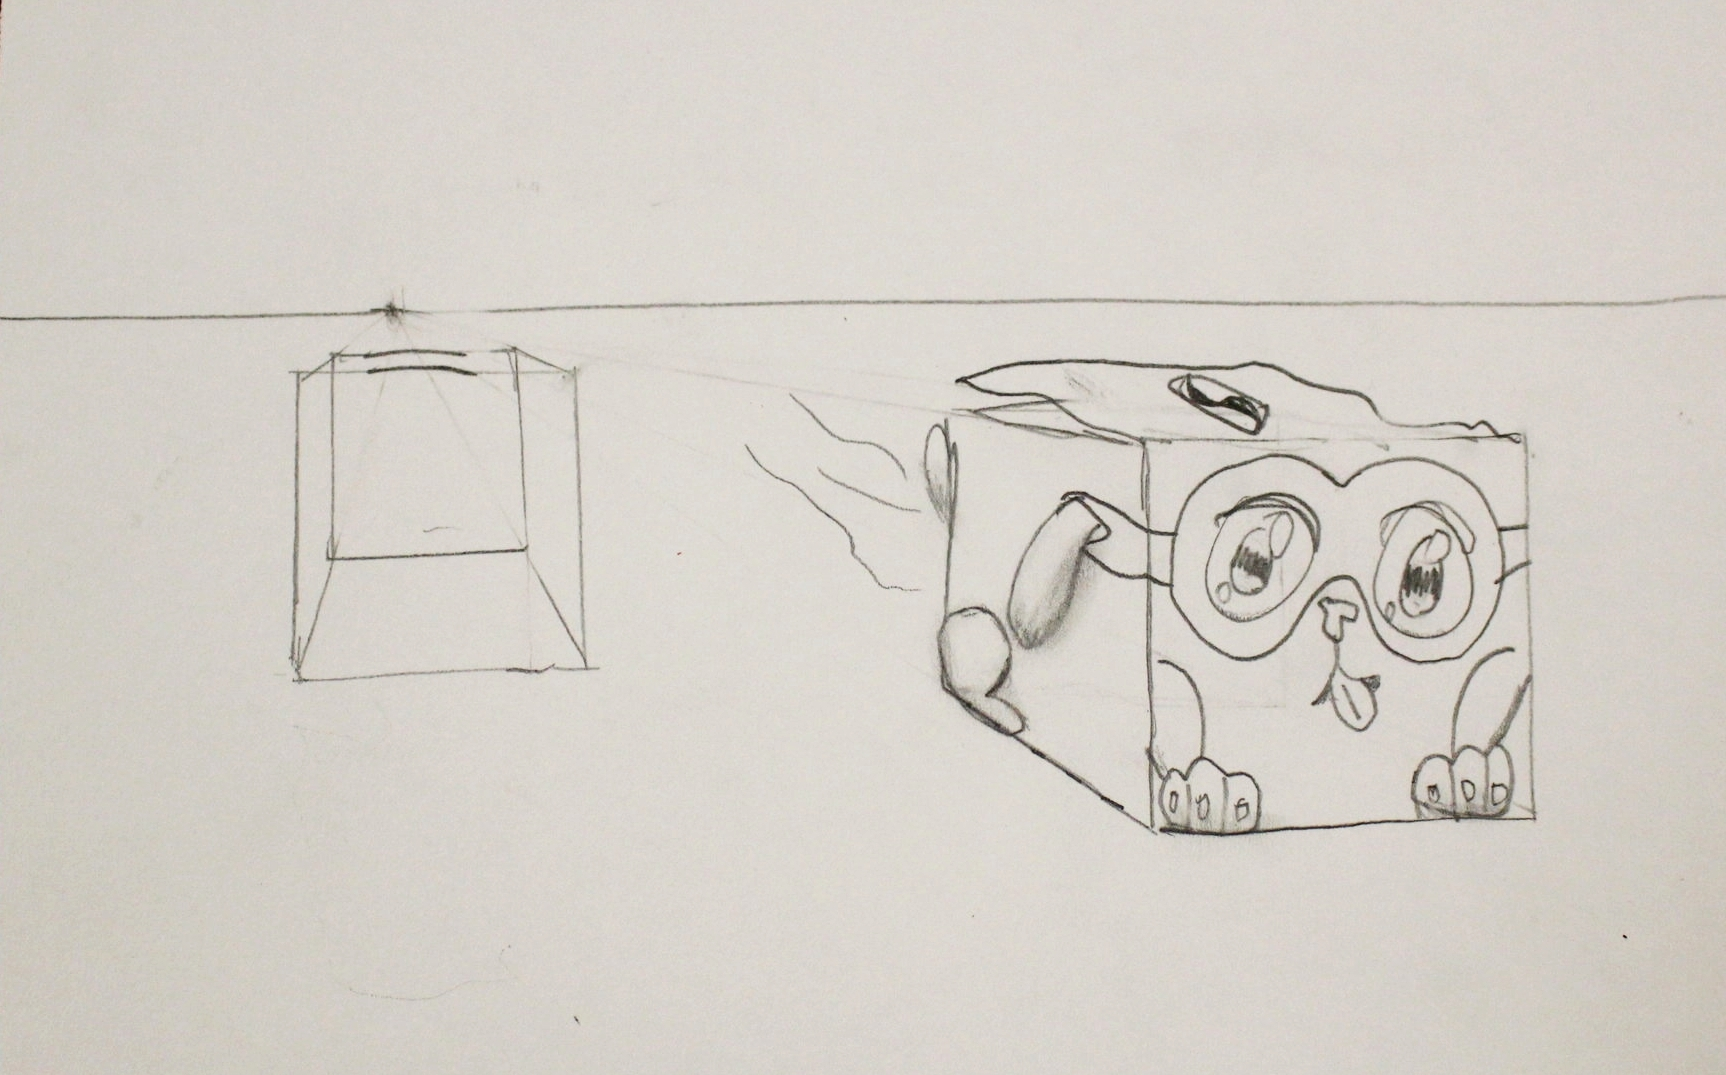 5th Grade: Chloe Peevyhouse (Surrealism Cube Sketch)